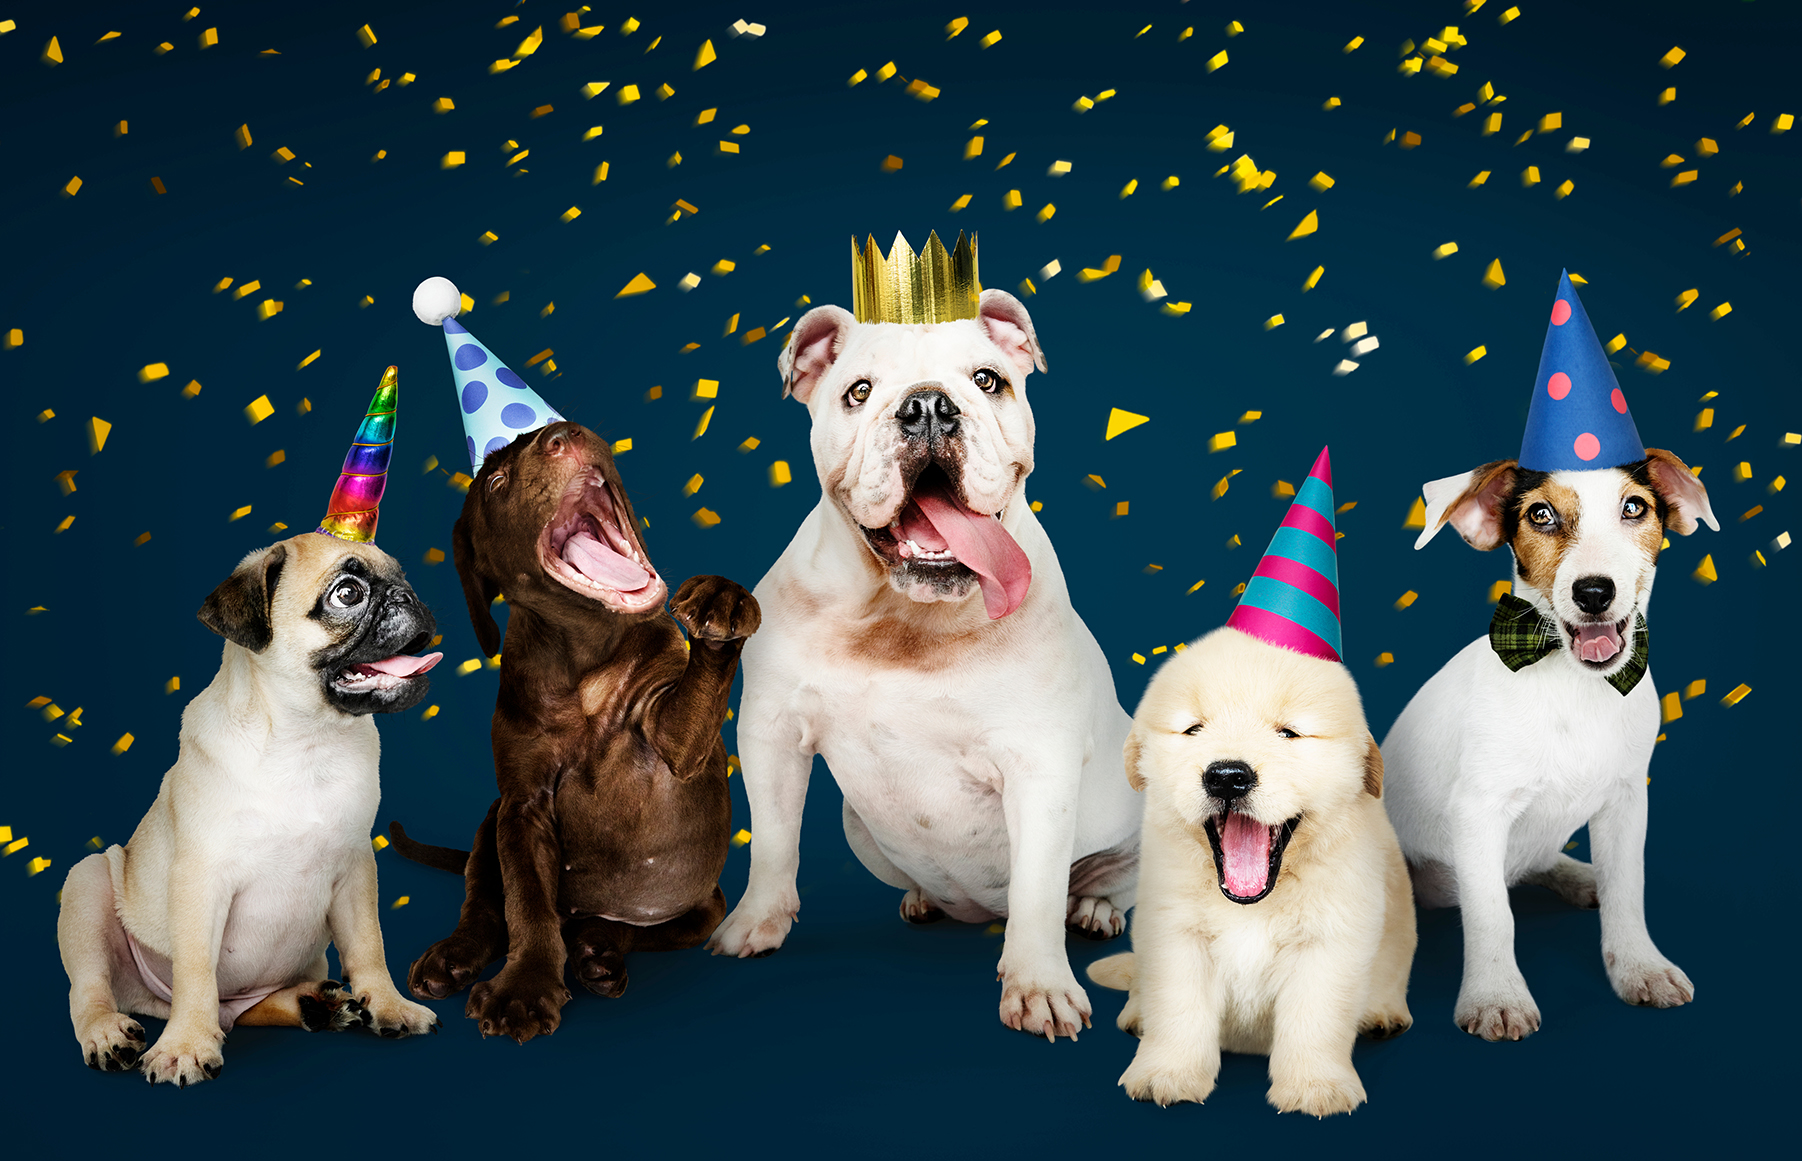 """Doggy Day Camp New Year Party - Sat, 1/9<br><br>  <span style=""""font-size: 22px; font-weight: 500;"""">It is time to celebrate the beginning of 2021 during our Doggy Day Camp New Year Party. Bring your party hats, dancing shoes, and get ready to play all day! Serving dog-friendly ice cream for $3 as we watch the BOUNCY ball drop together.<br><br> Call your local Best Friends Pet Hotel to find out more or reserve your spot today!</span>"""